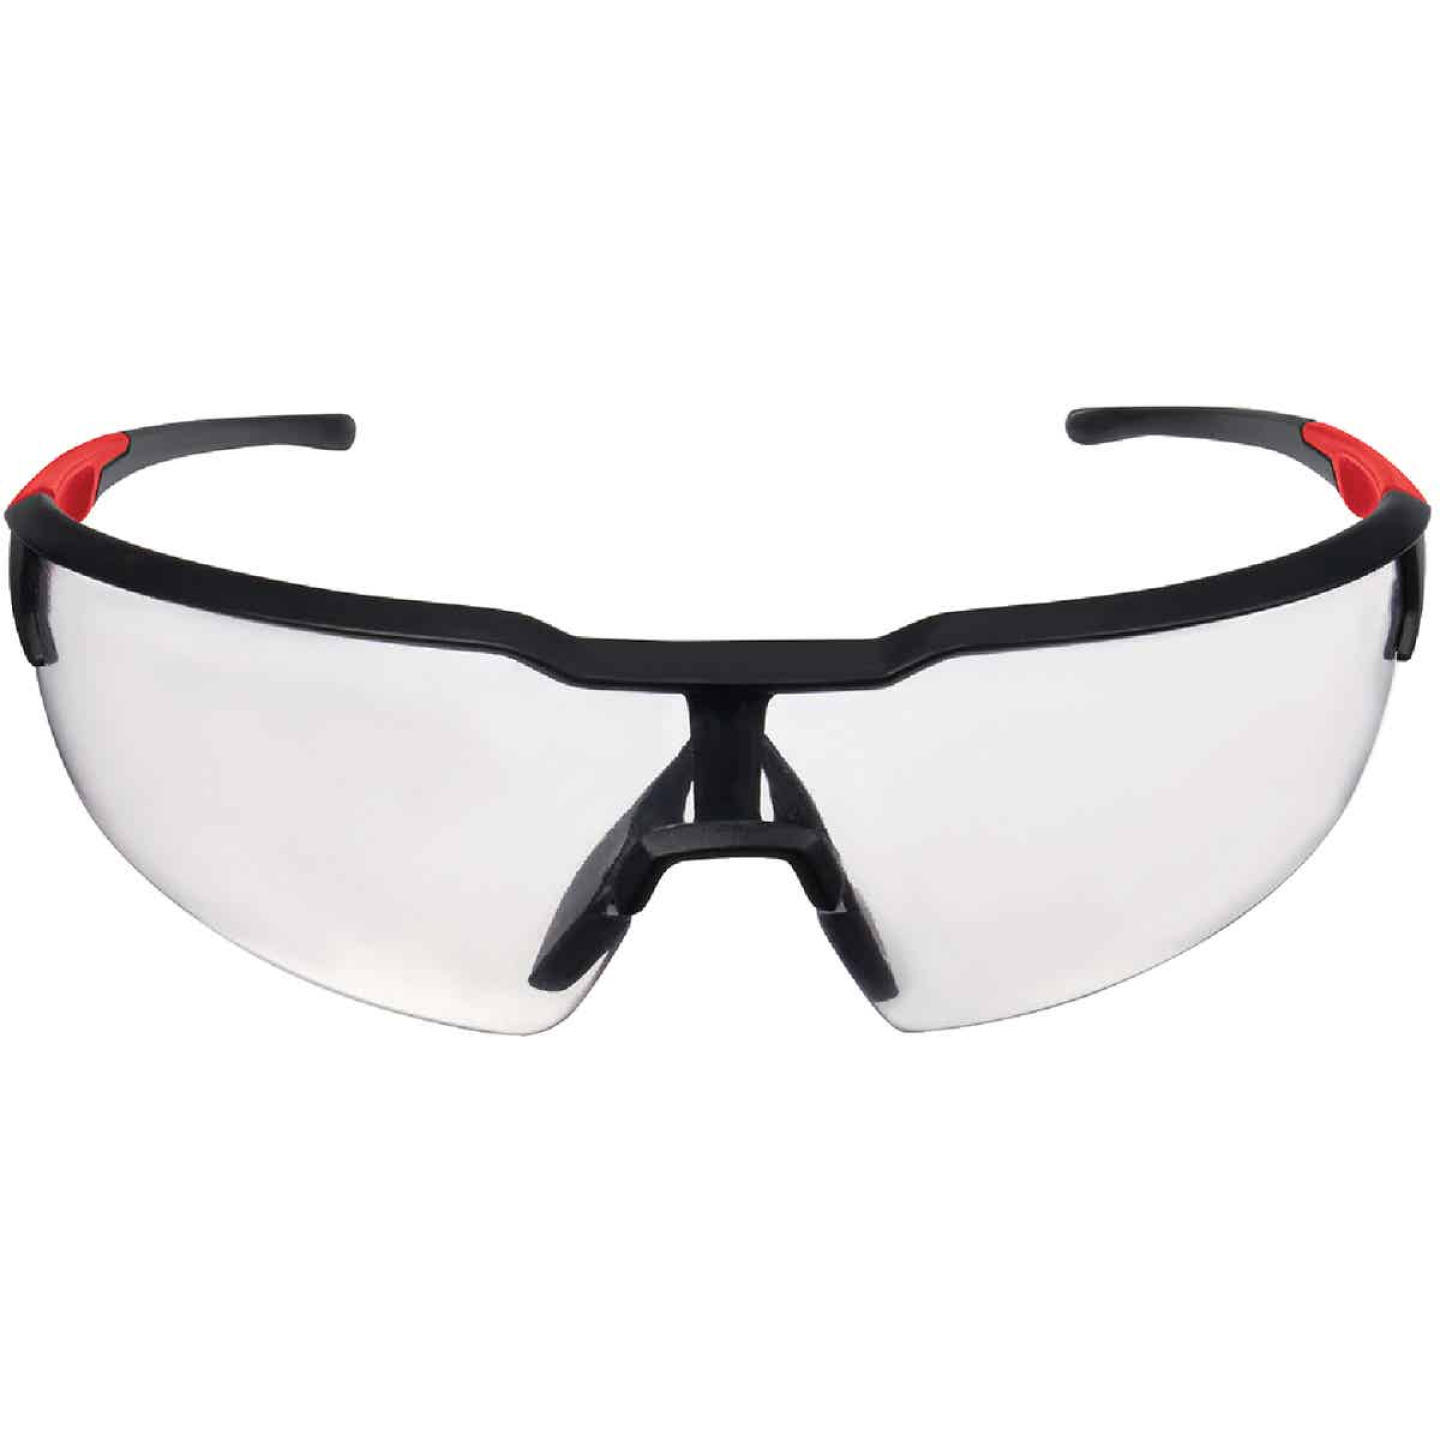 Milwaukee Red & Black Frame Safety Glasses with Clear Fog-Free Lenses Image 4